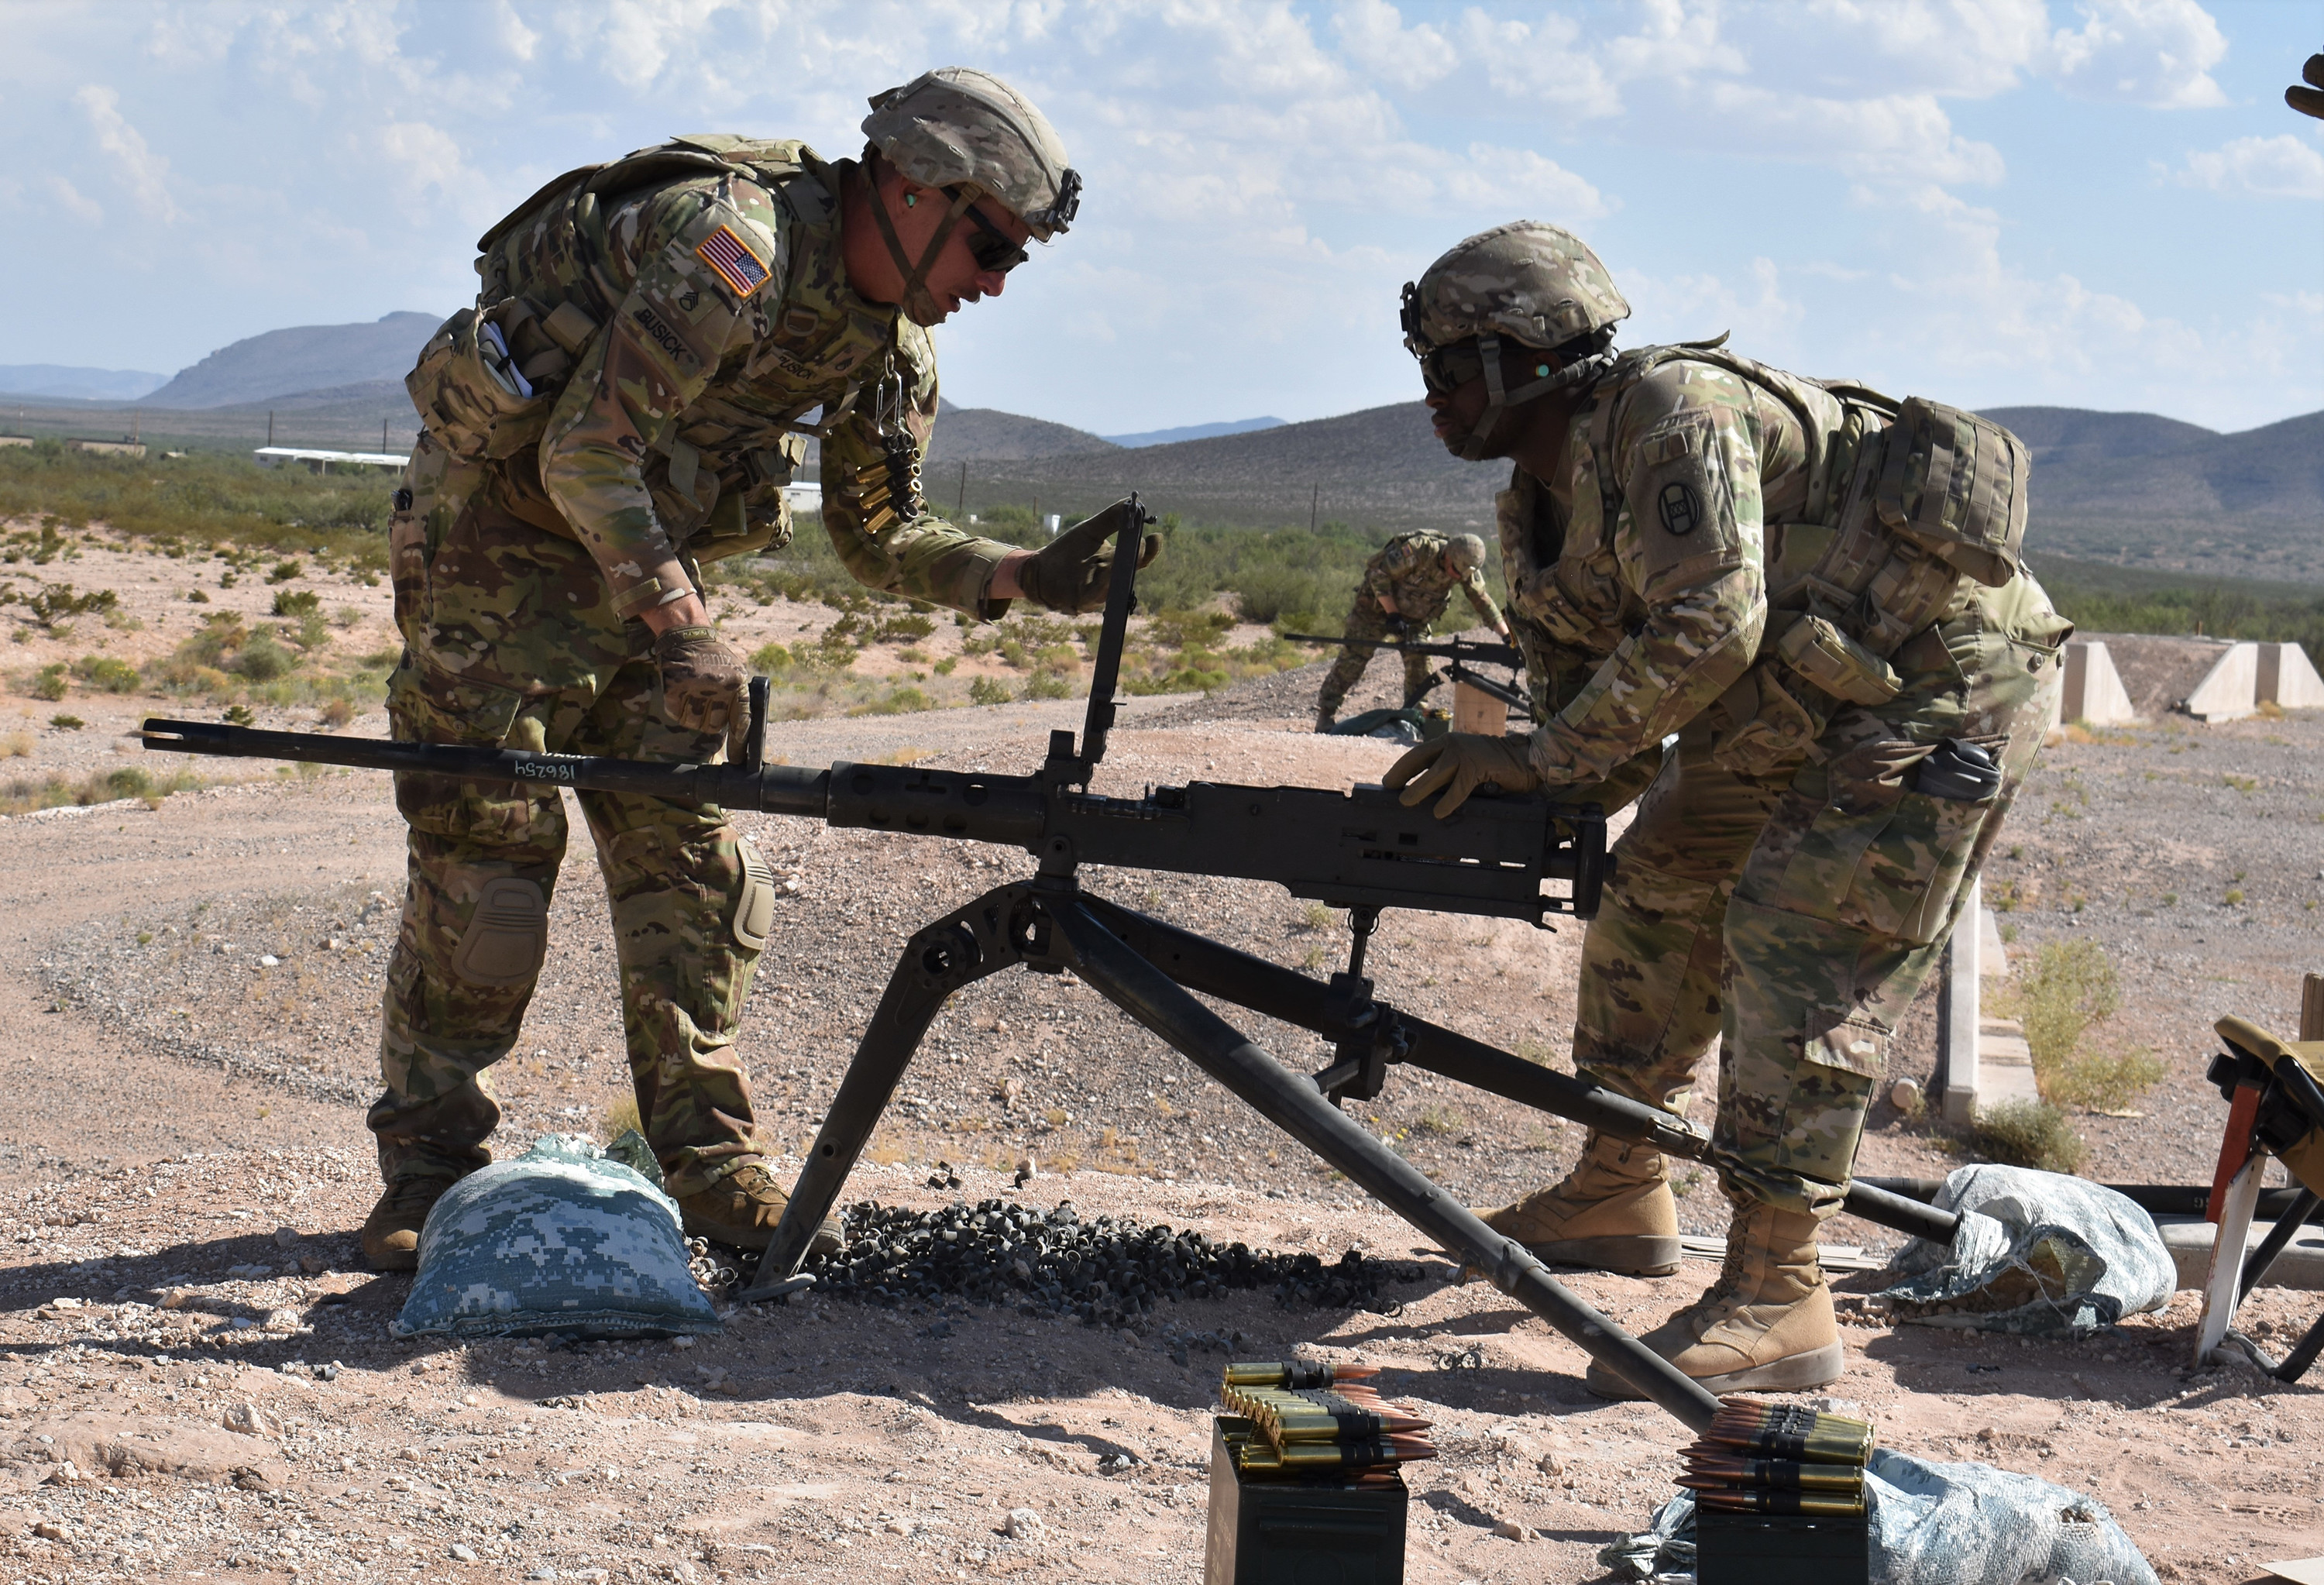 National Guard units use step training to prepare to deploy